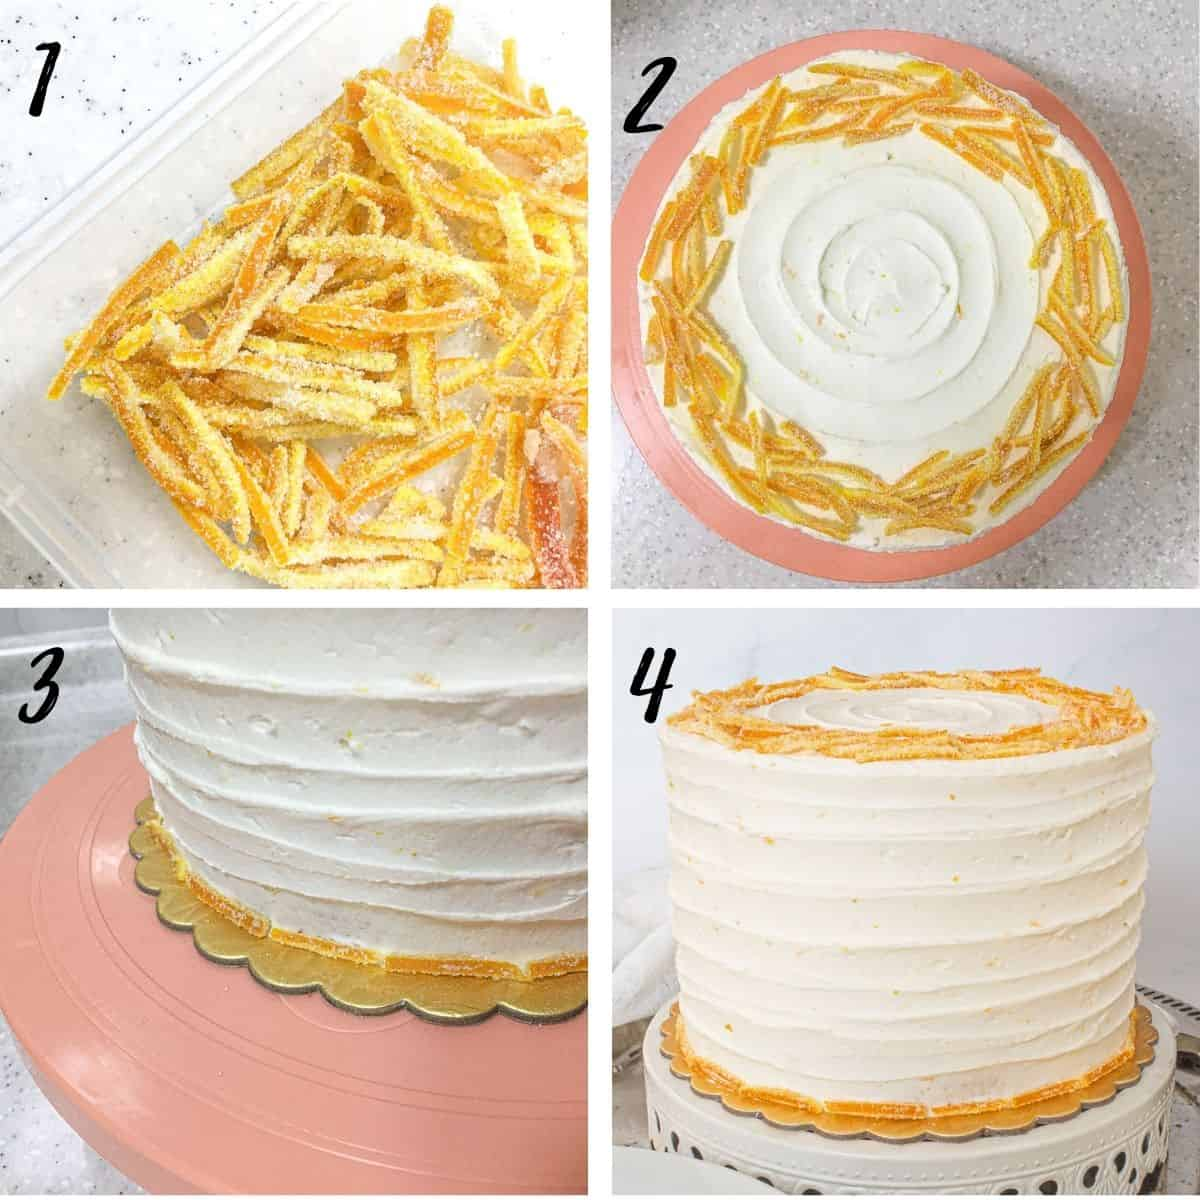 Poster showing a round cake covered in buttercream and decorated with candied orange peels